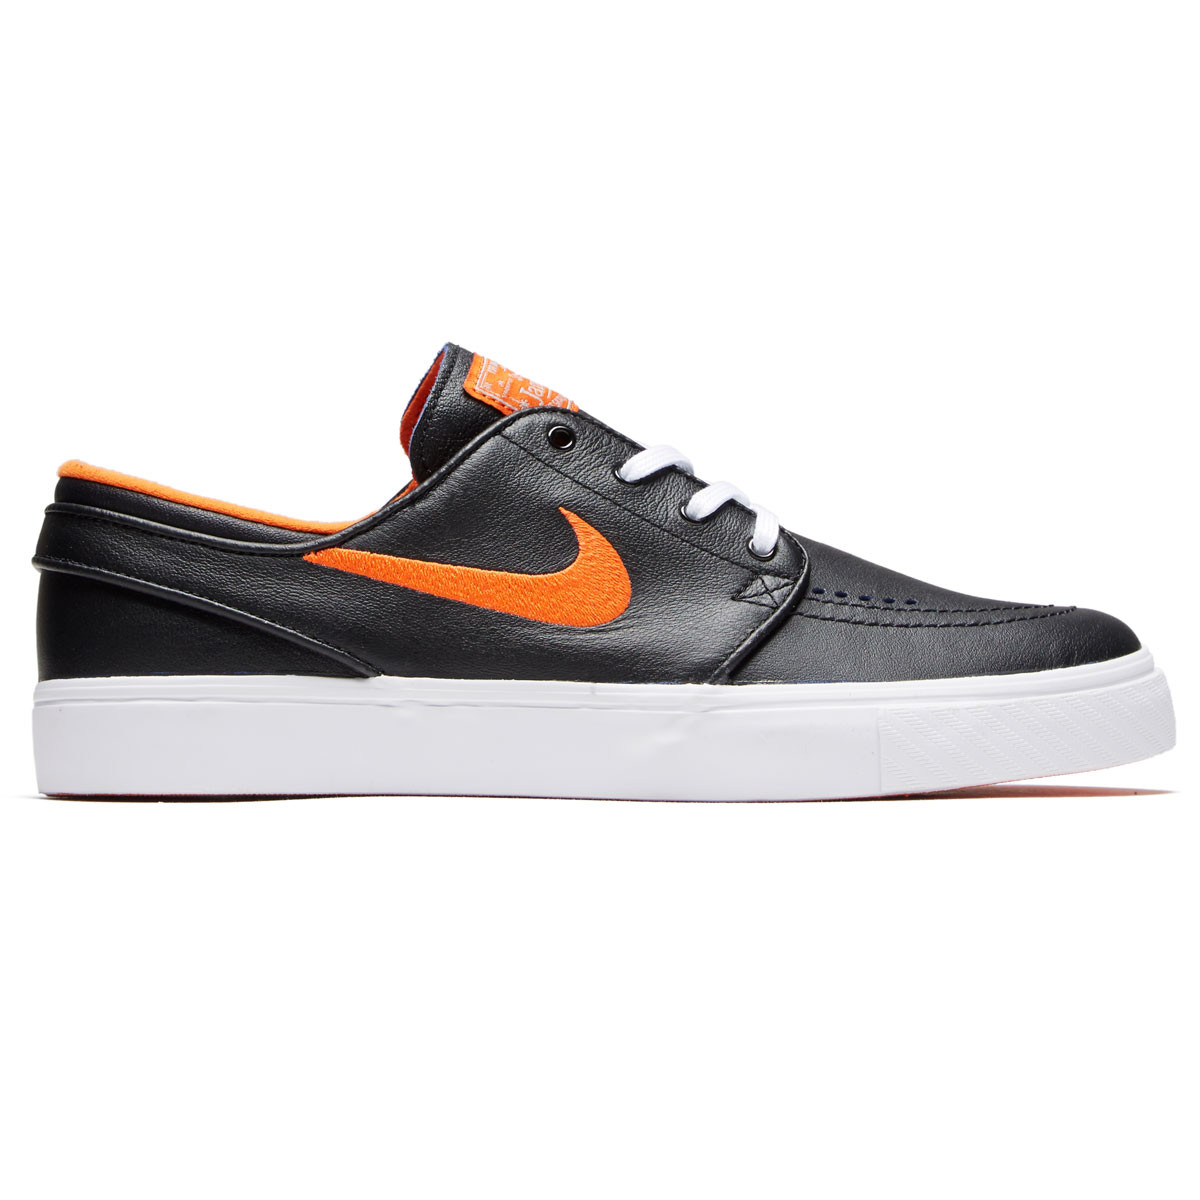 dbb987fb3acf2d Nike SB x NBA Zoom Janoski Shoes - Black Brilliant Ornge Rush Blue -